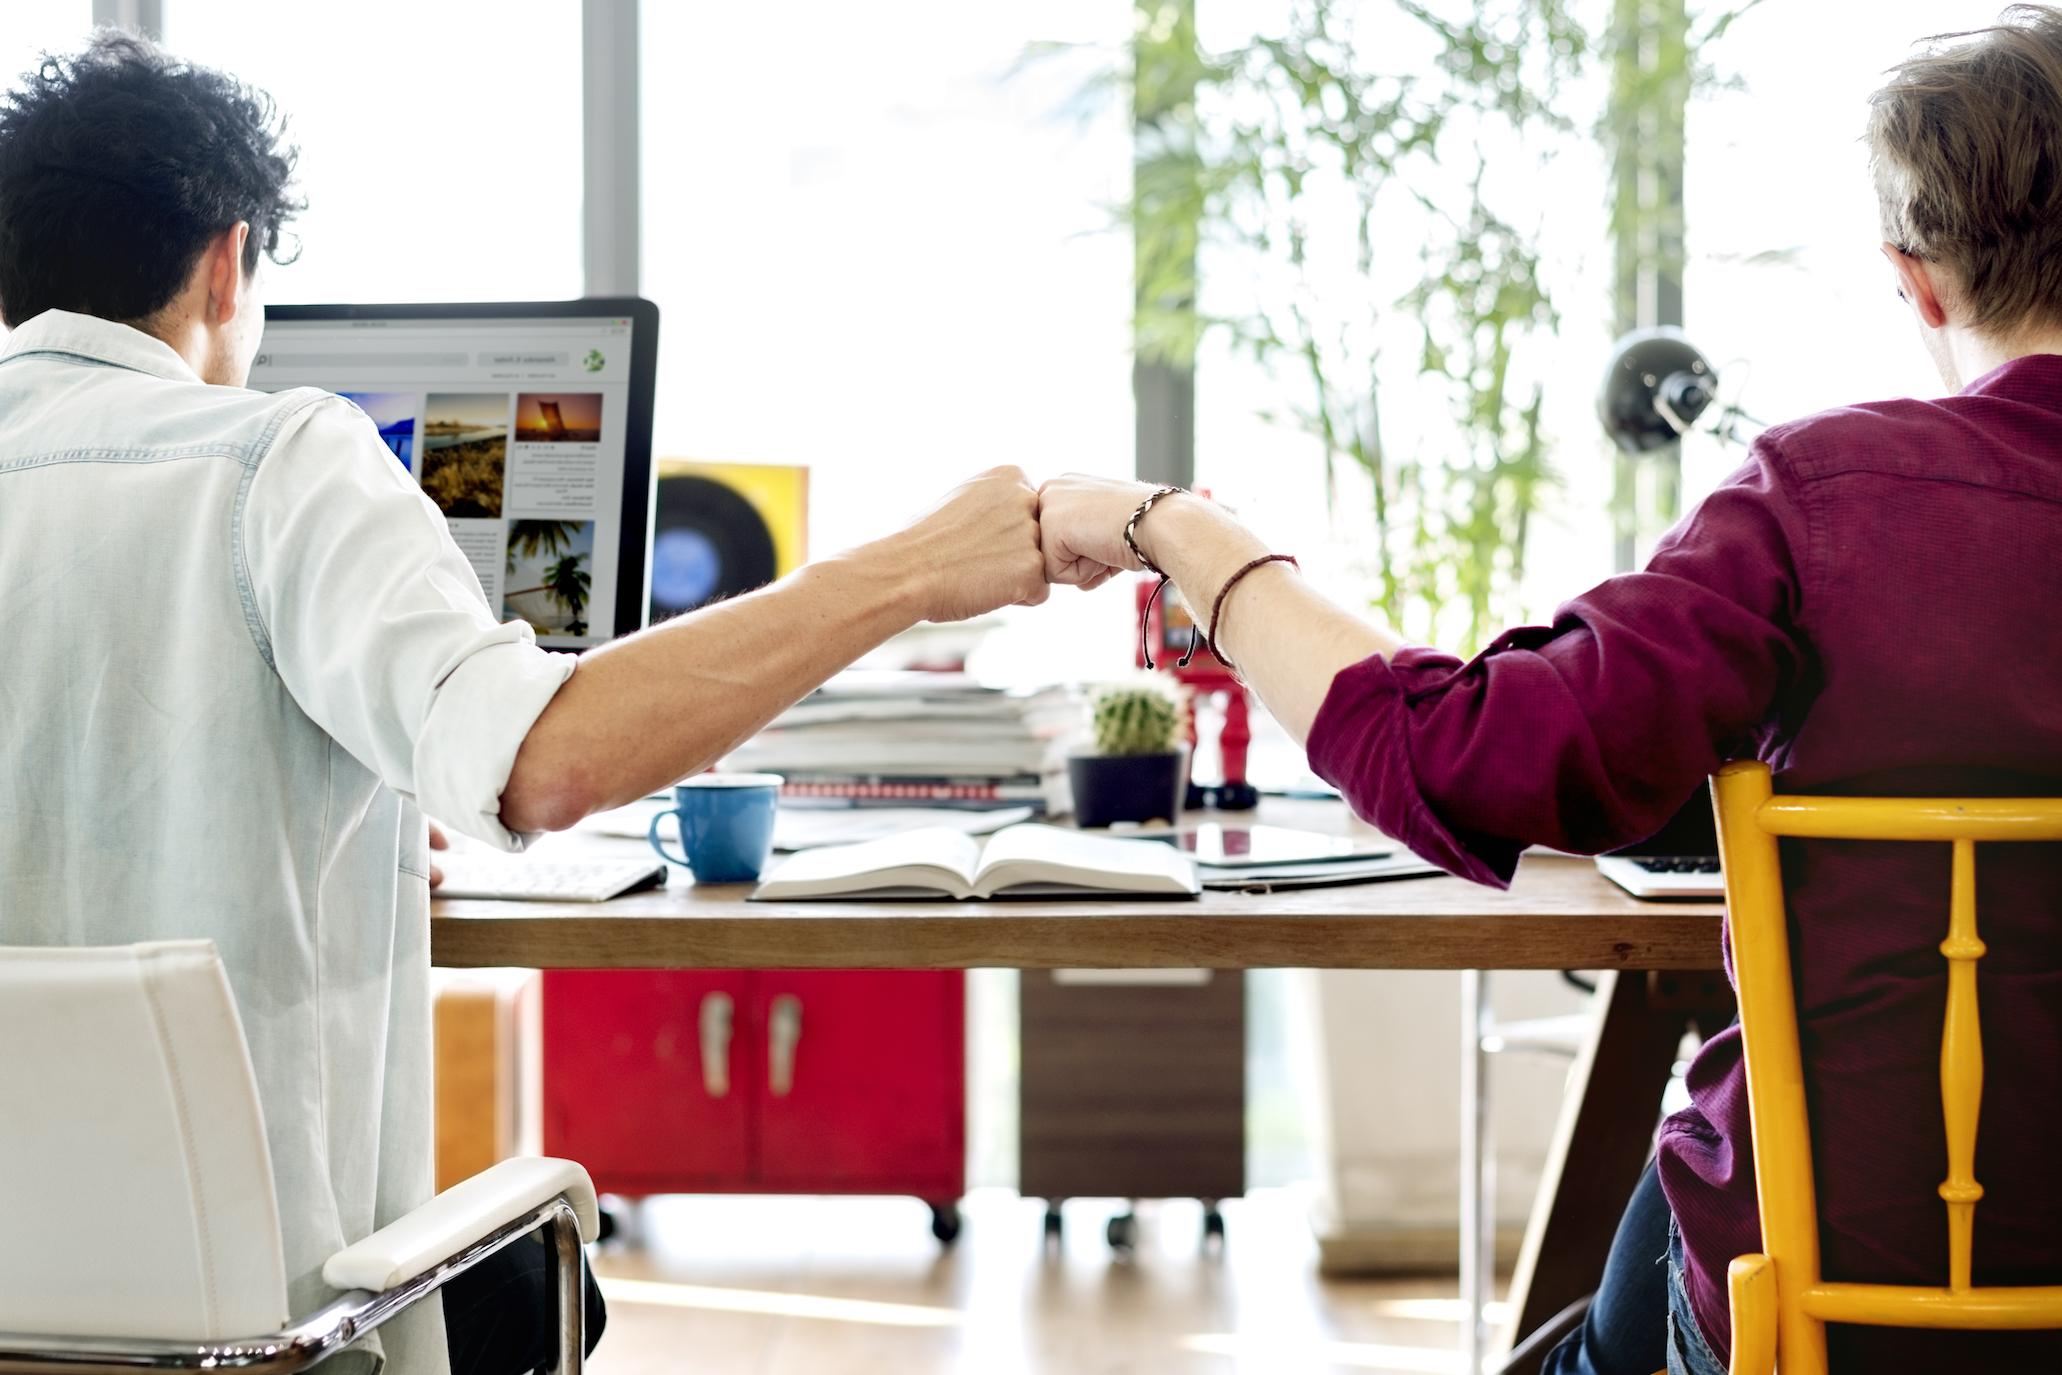 While teamwork is usually thought of as a good thing, a recent study reveals that helping out colleagues may have a dark side too.